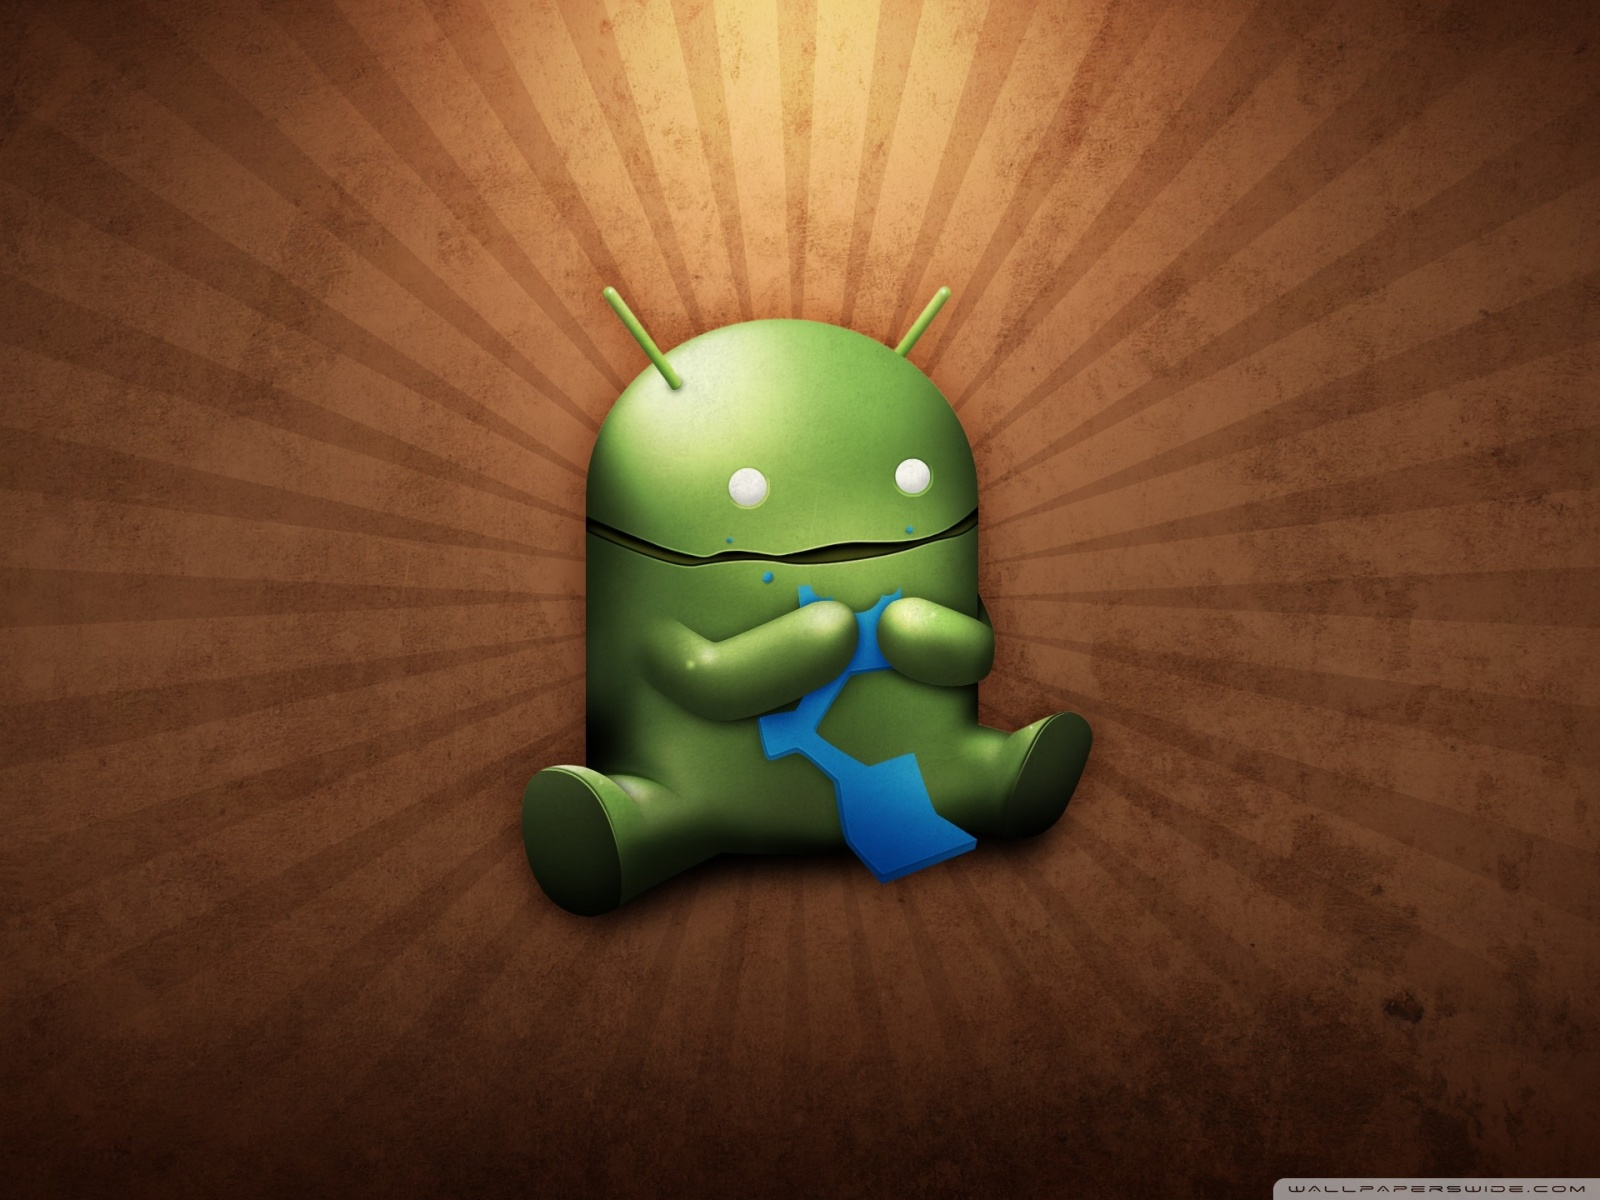 Free Funny Android Robot phone wallpaper by tina52262